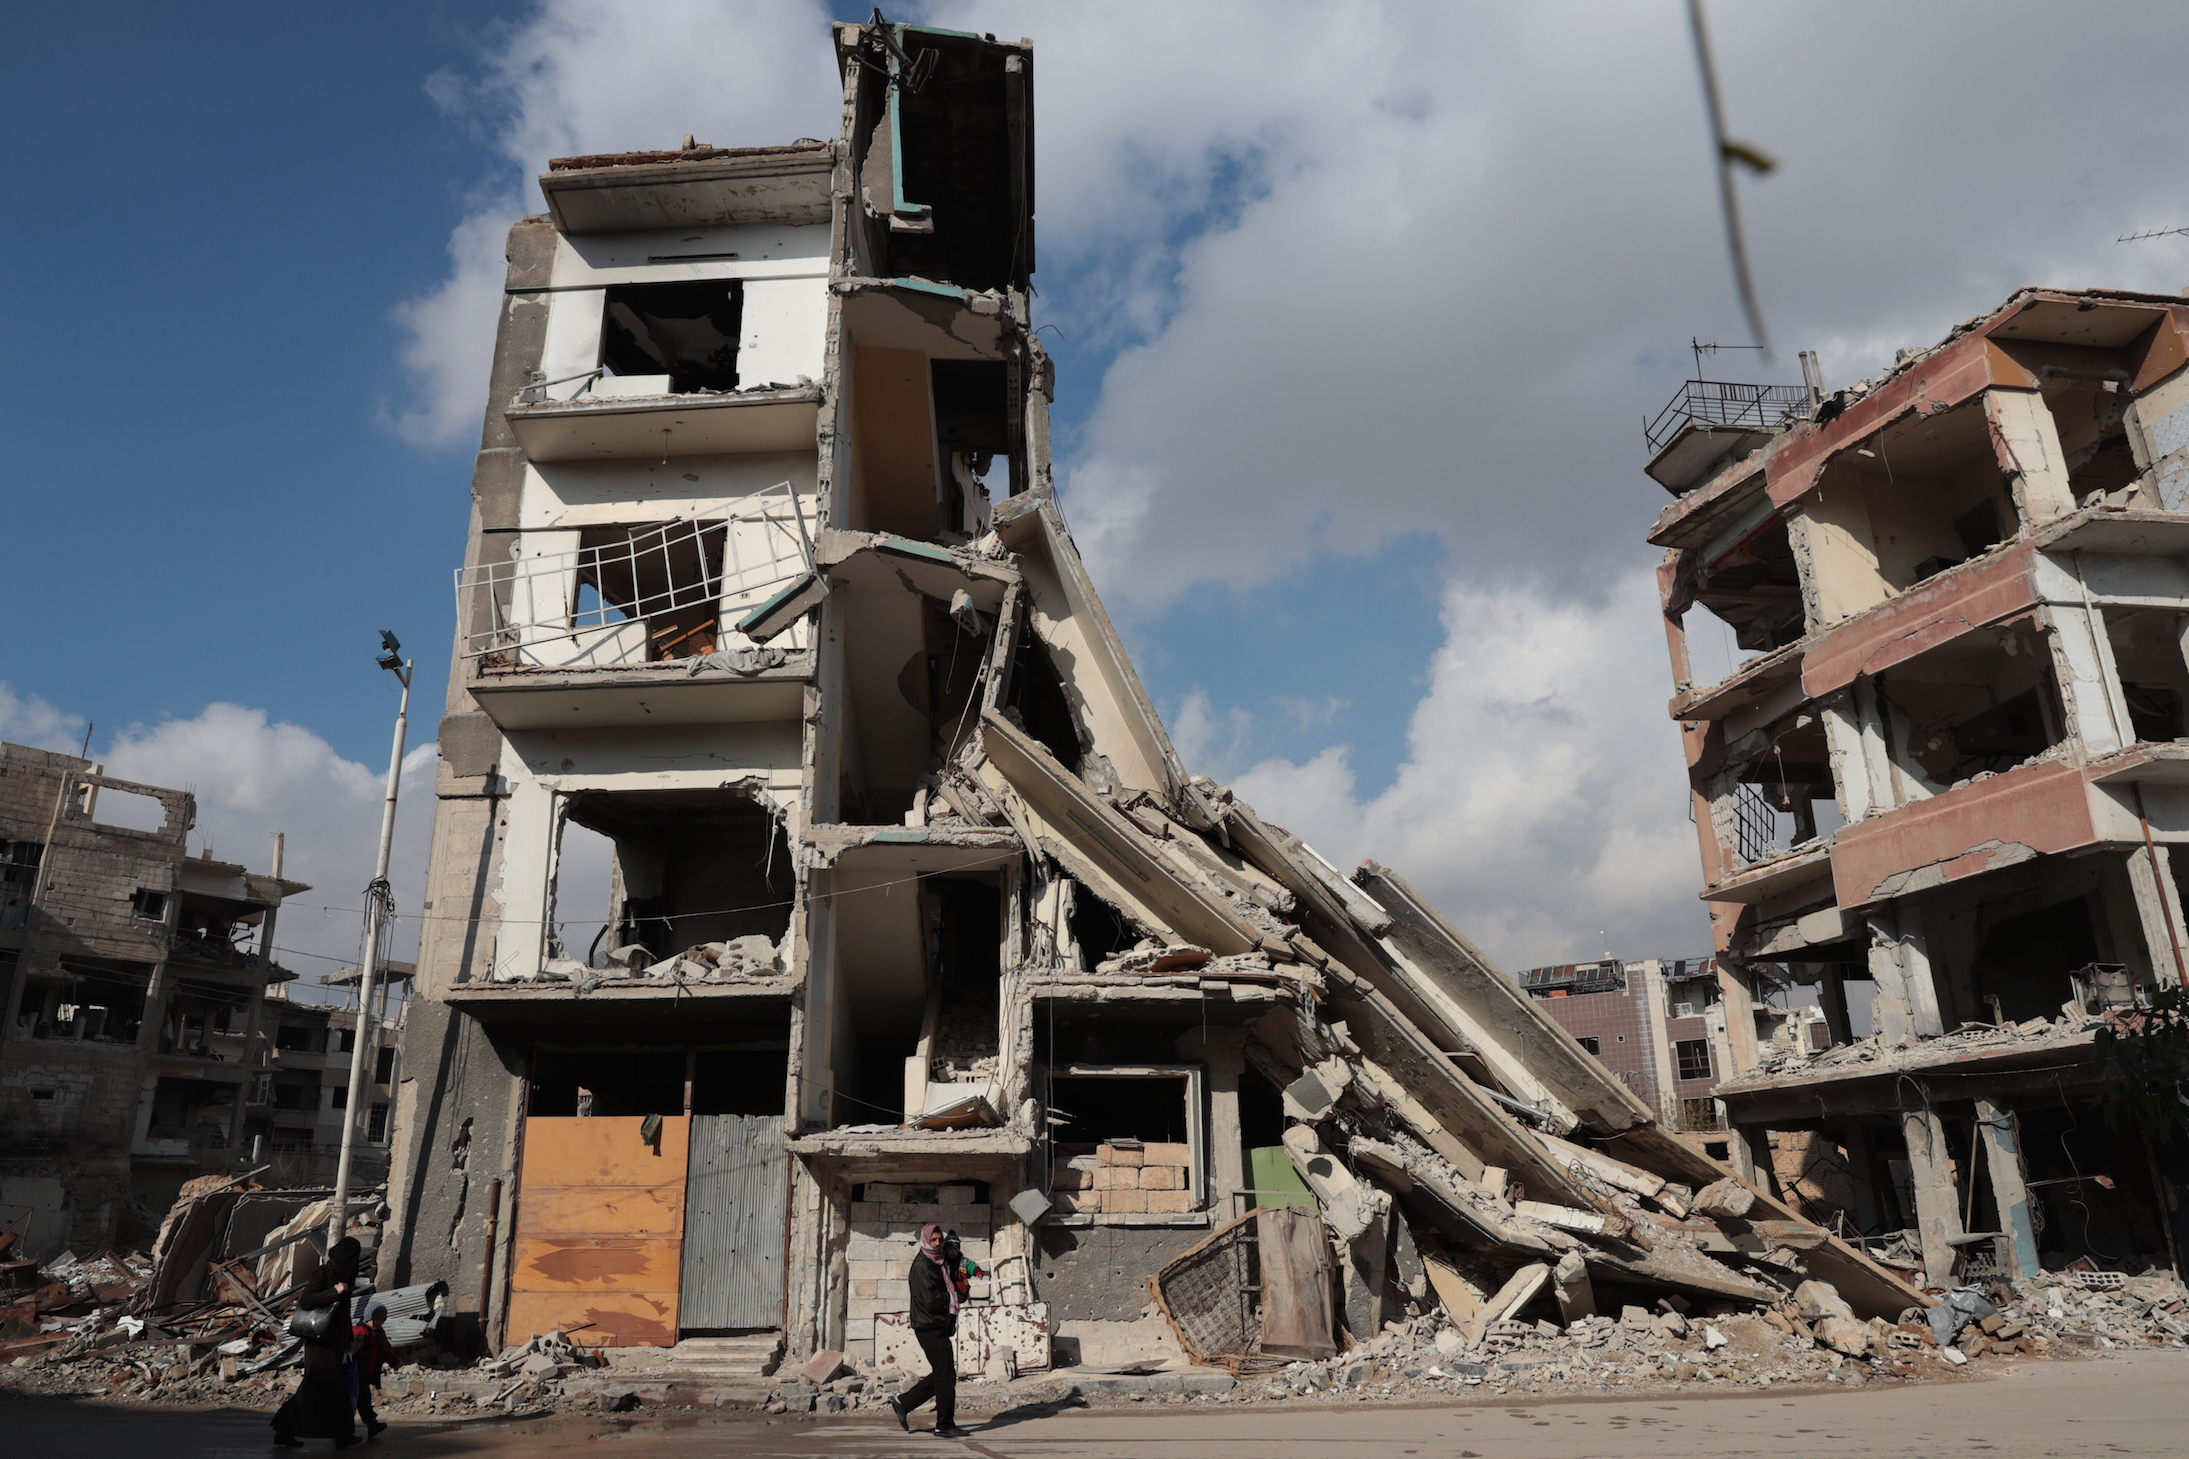 Syrians walk past a destroyed building in the rebel-held town of Douma, on the eastern outskirts of Damascus, on December 30, 2016, on the first day of a nationwide truce. Clashes erupted between Syrian government forces and opposition fighters in an area outside Damascus, despite a nationwide truce that began at midnight, a monitor said. / AFP / Abd Doumany        (Photo credit should read ABD DOUMANY/AFP/Getty Images)